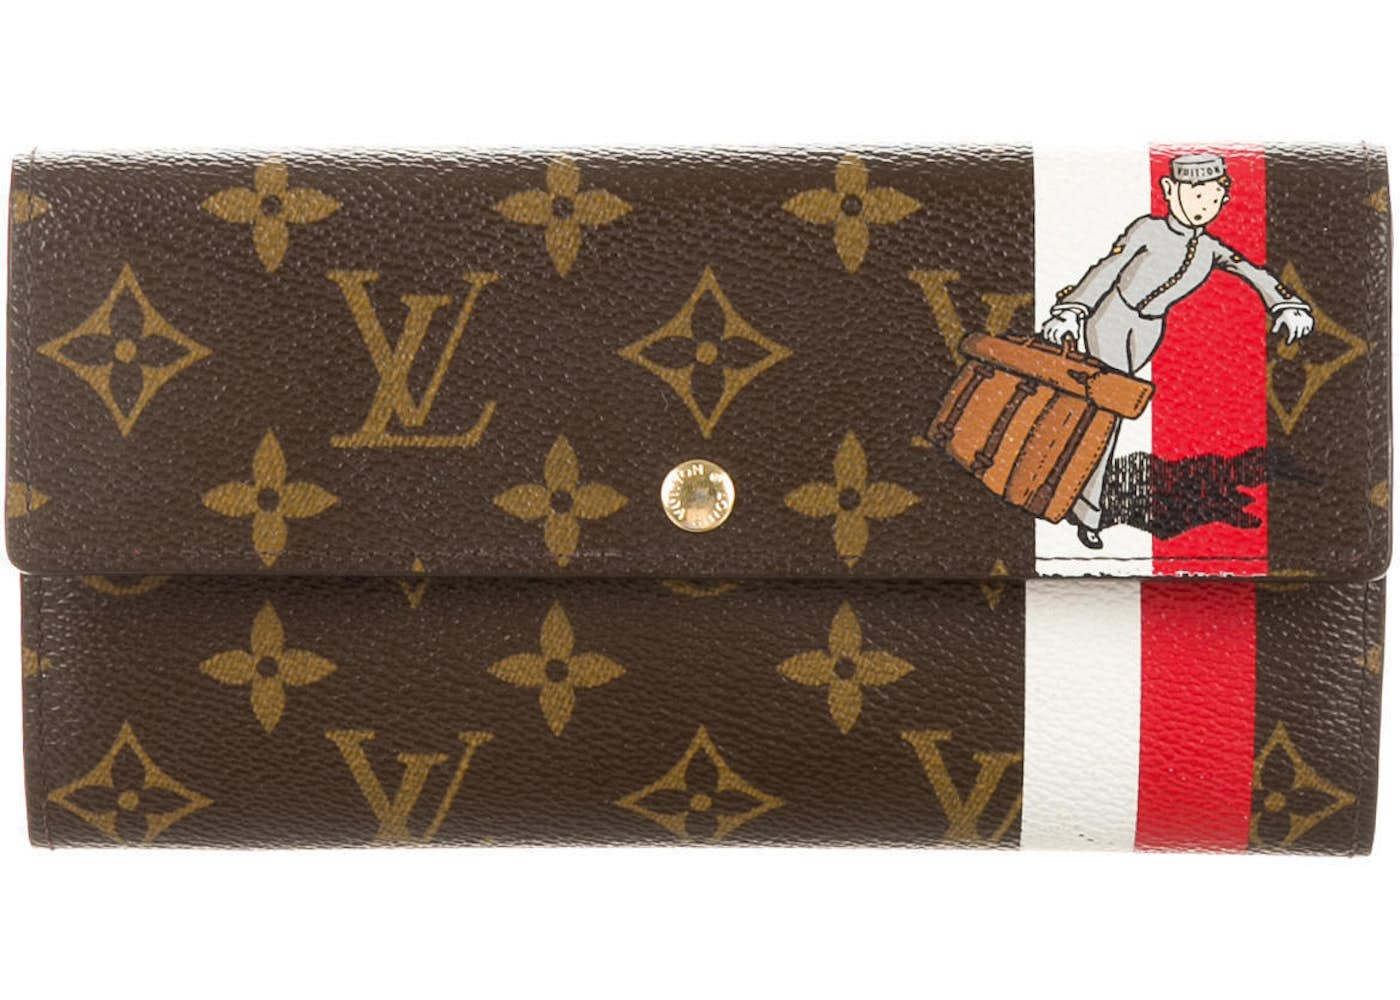 Vuitton Sarah Monogram Groom Porte Monnaie BrownRedWhite - Groom porte